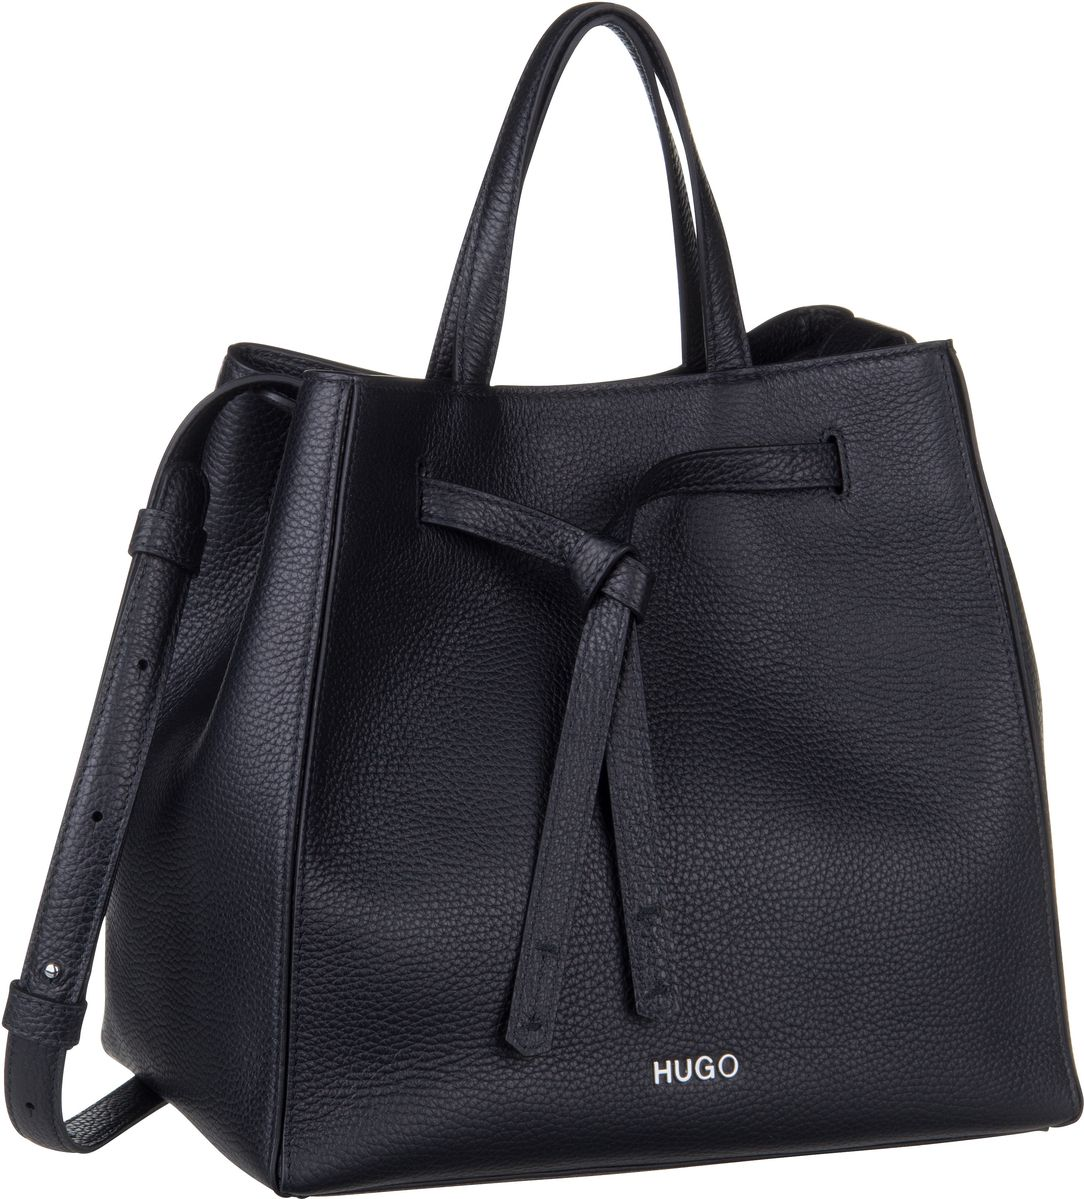 HUGO Handtasche Mayfair Drawstring 397974 Black